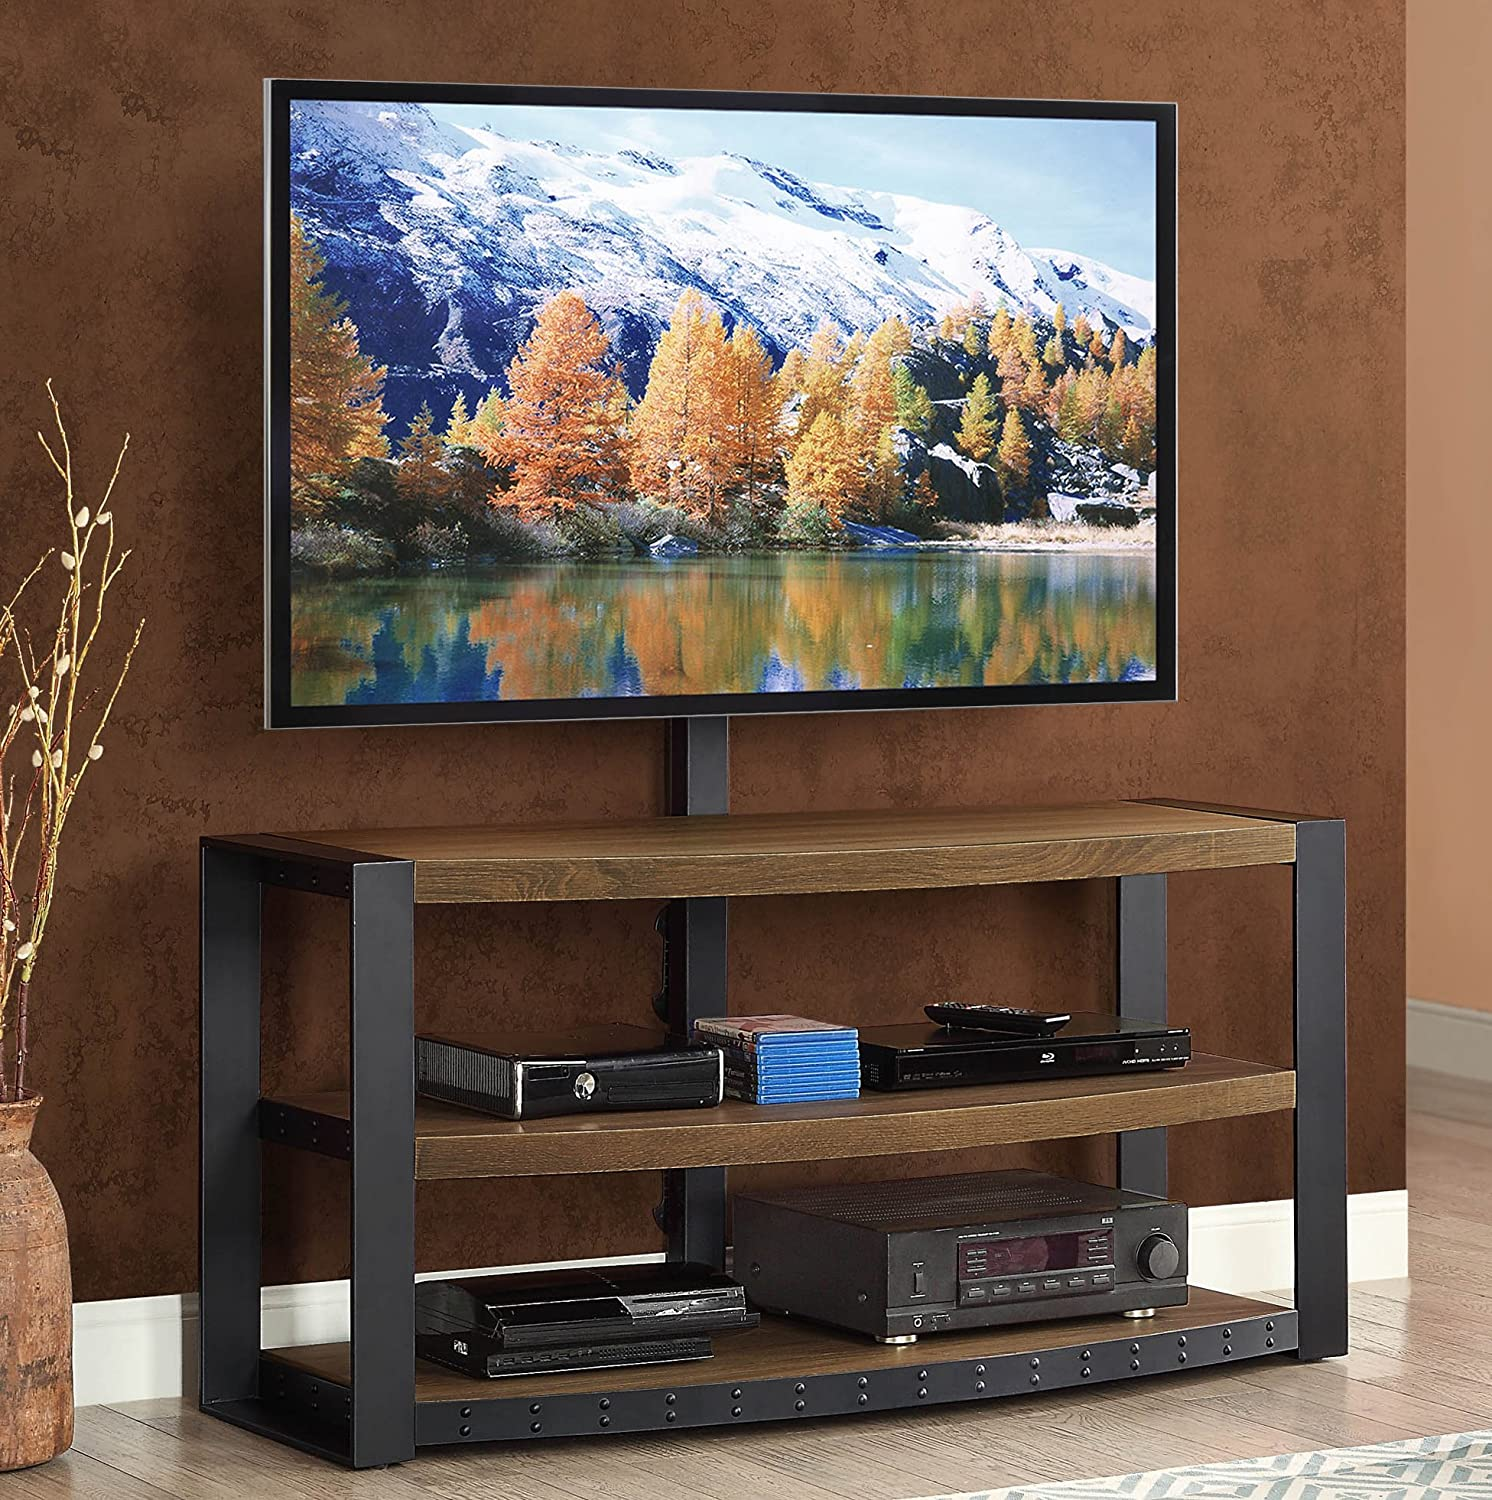 Amazon.com: Whalen Furniture Santa Fe 3 In 1 TV Stand: Kitchen U0026 Dining